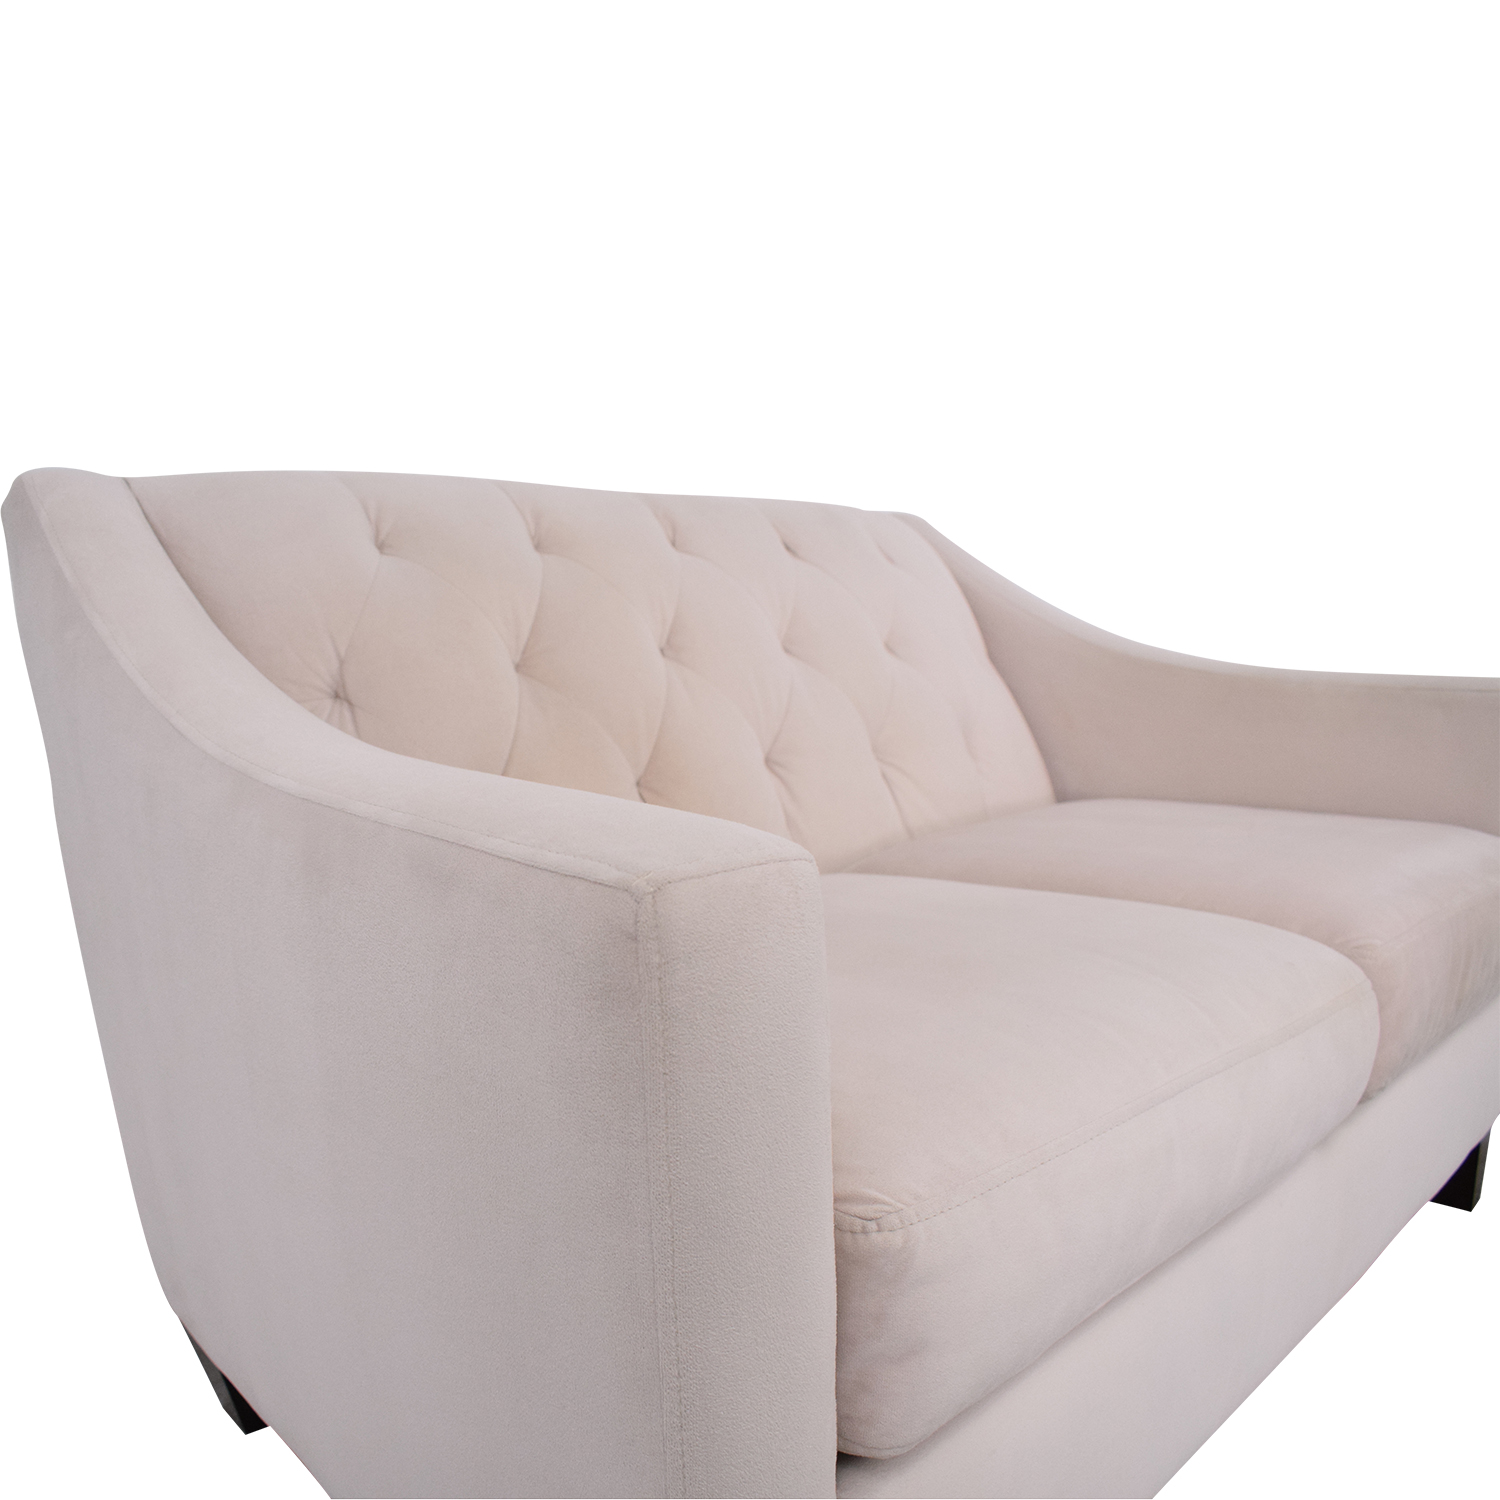 Macy's Macy's Cream Loveseat used